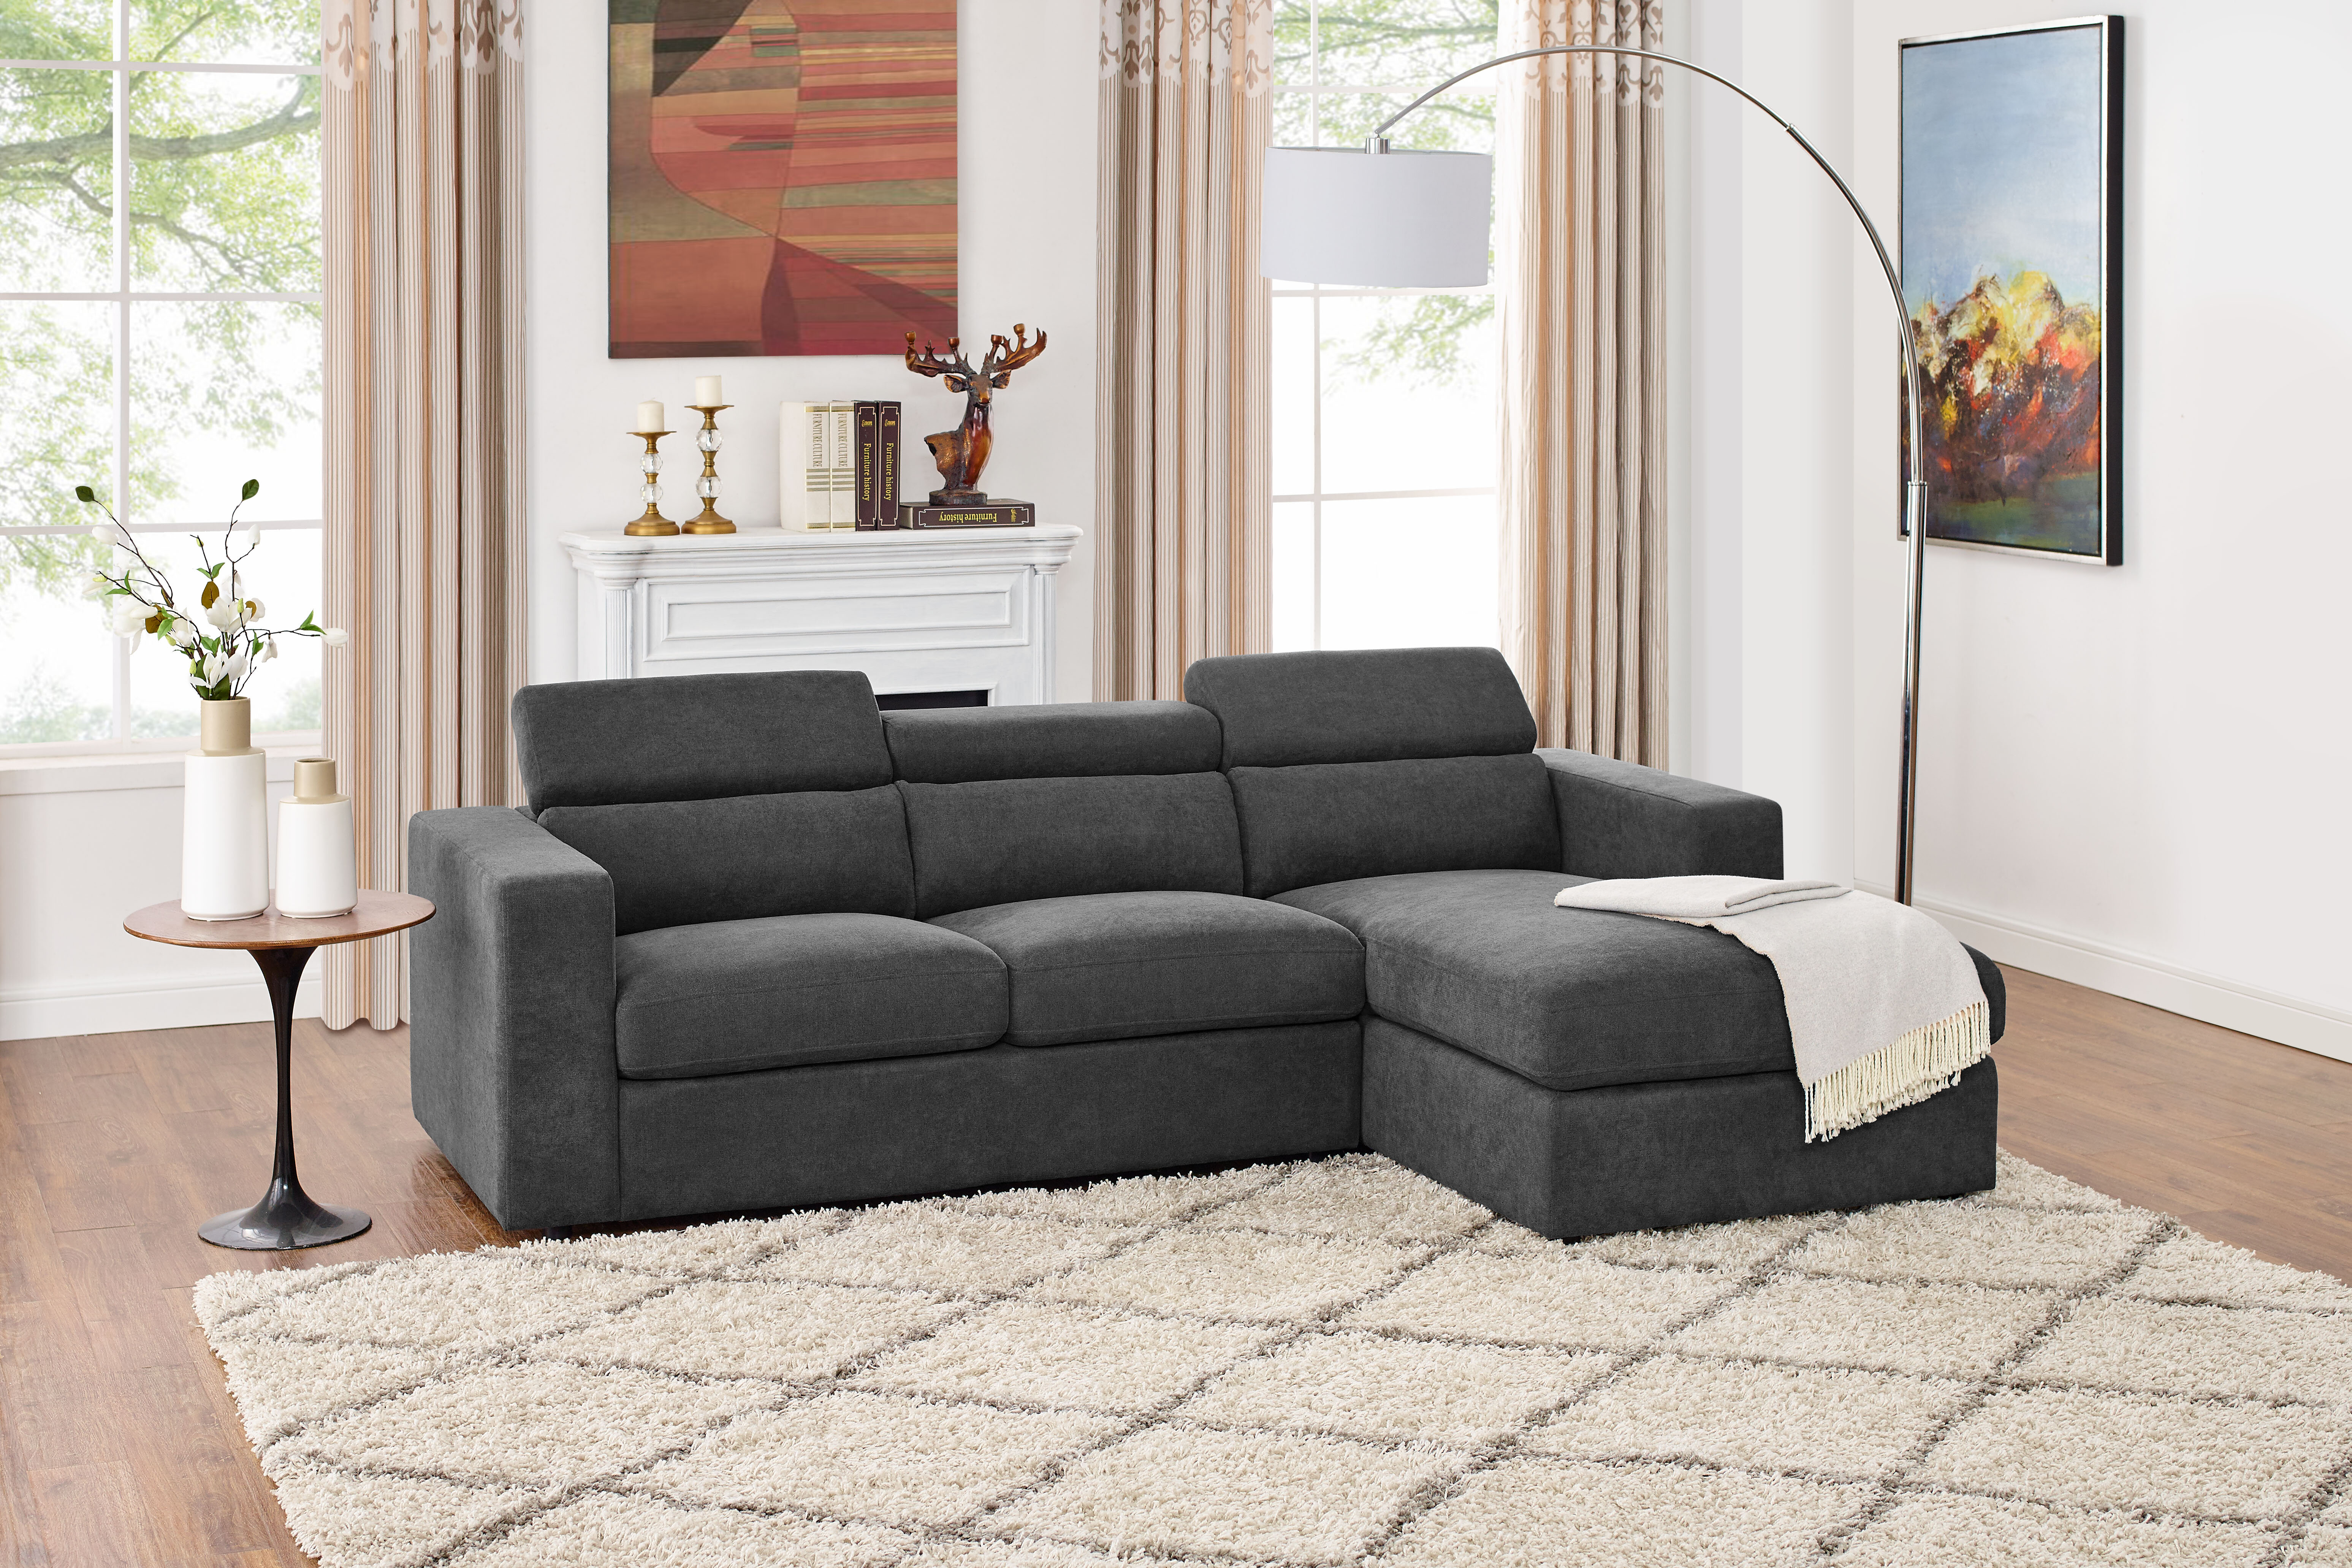 Fowlerville 3 Seater Right Hand Facing Sectional Sofa With Ottoman